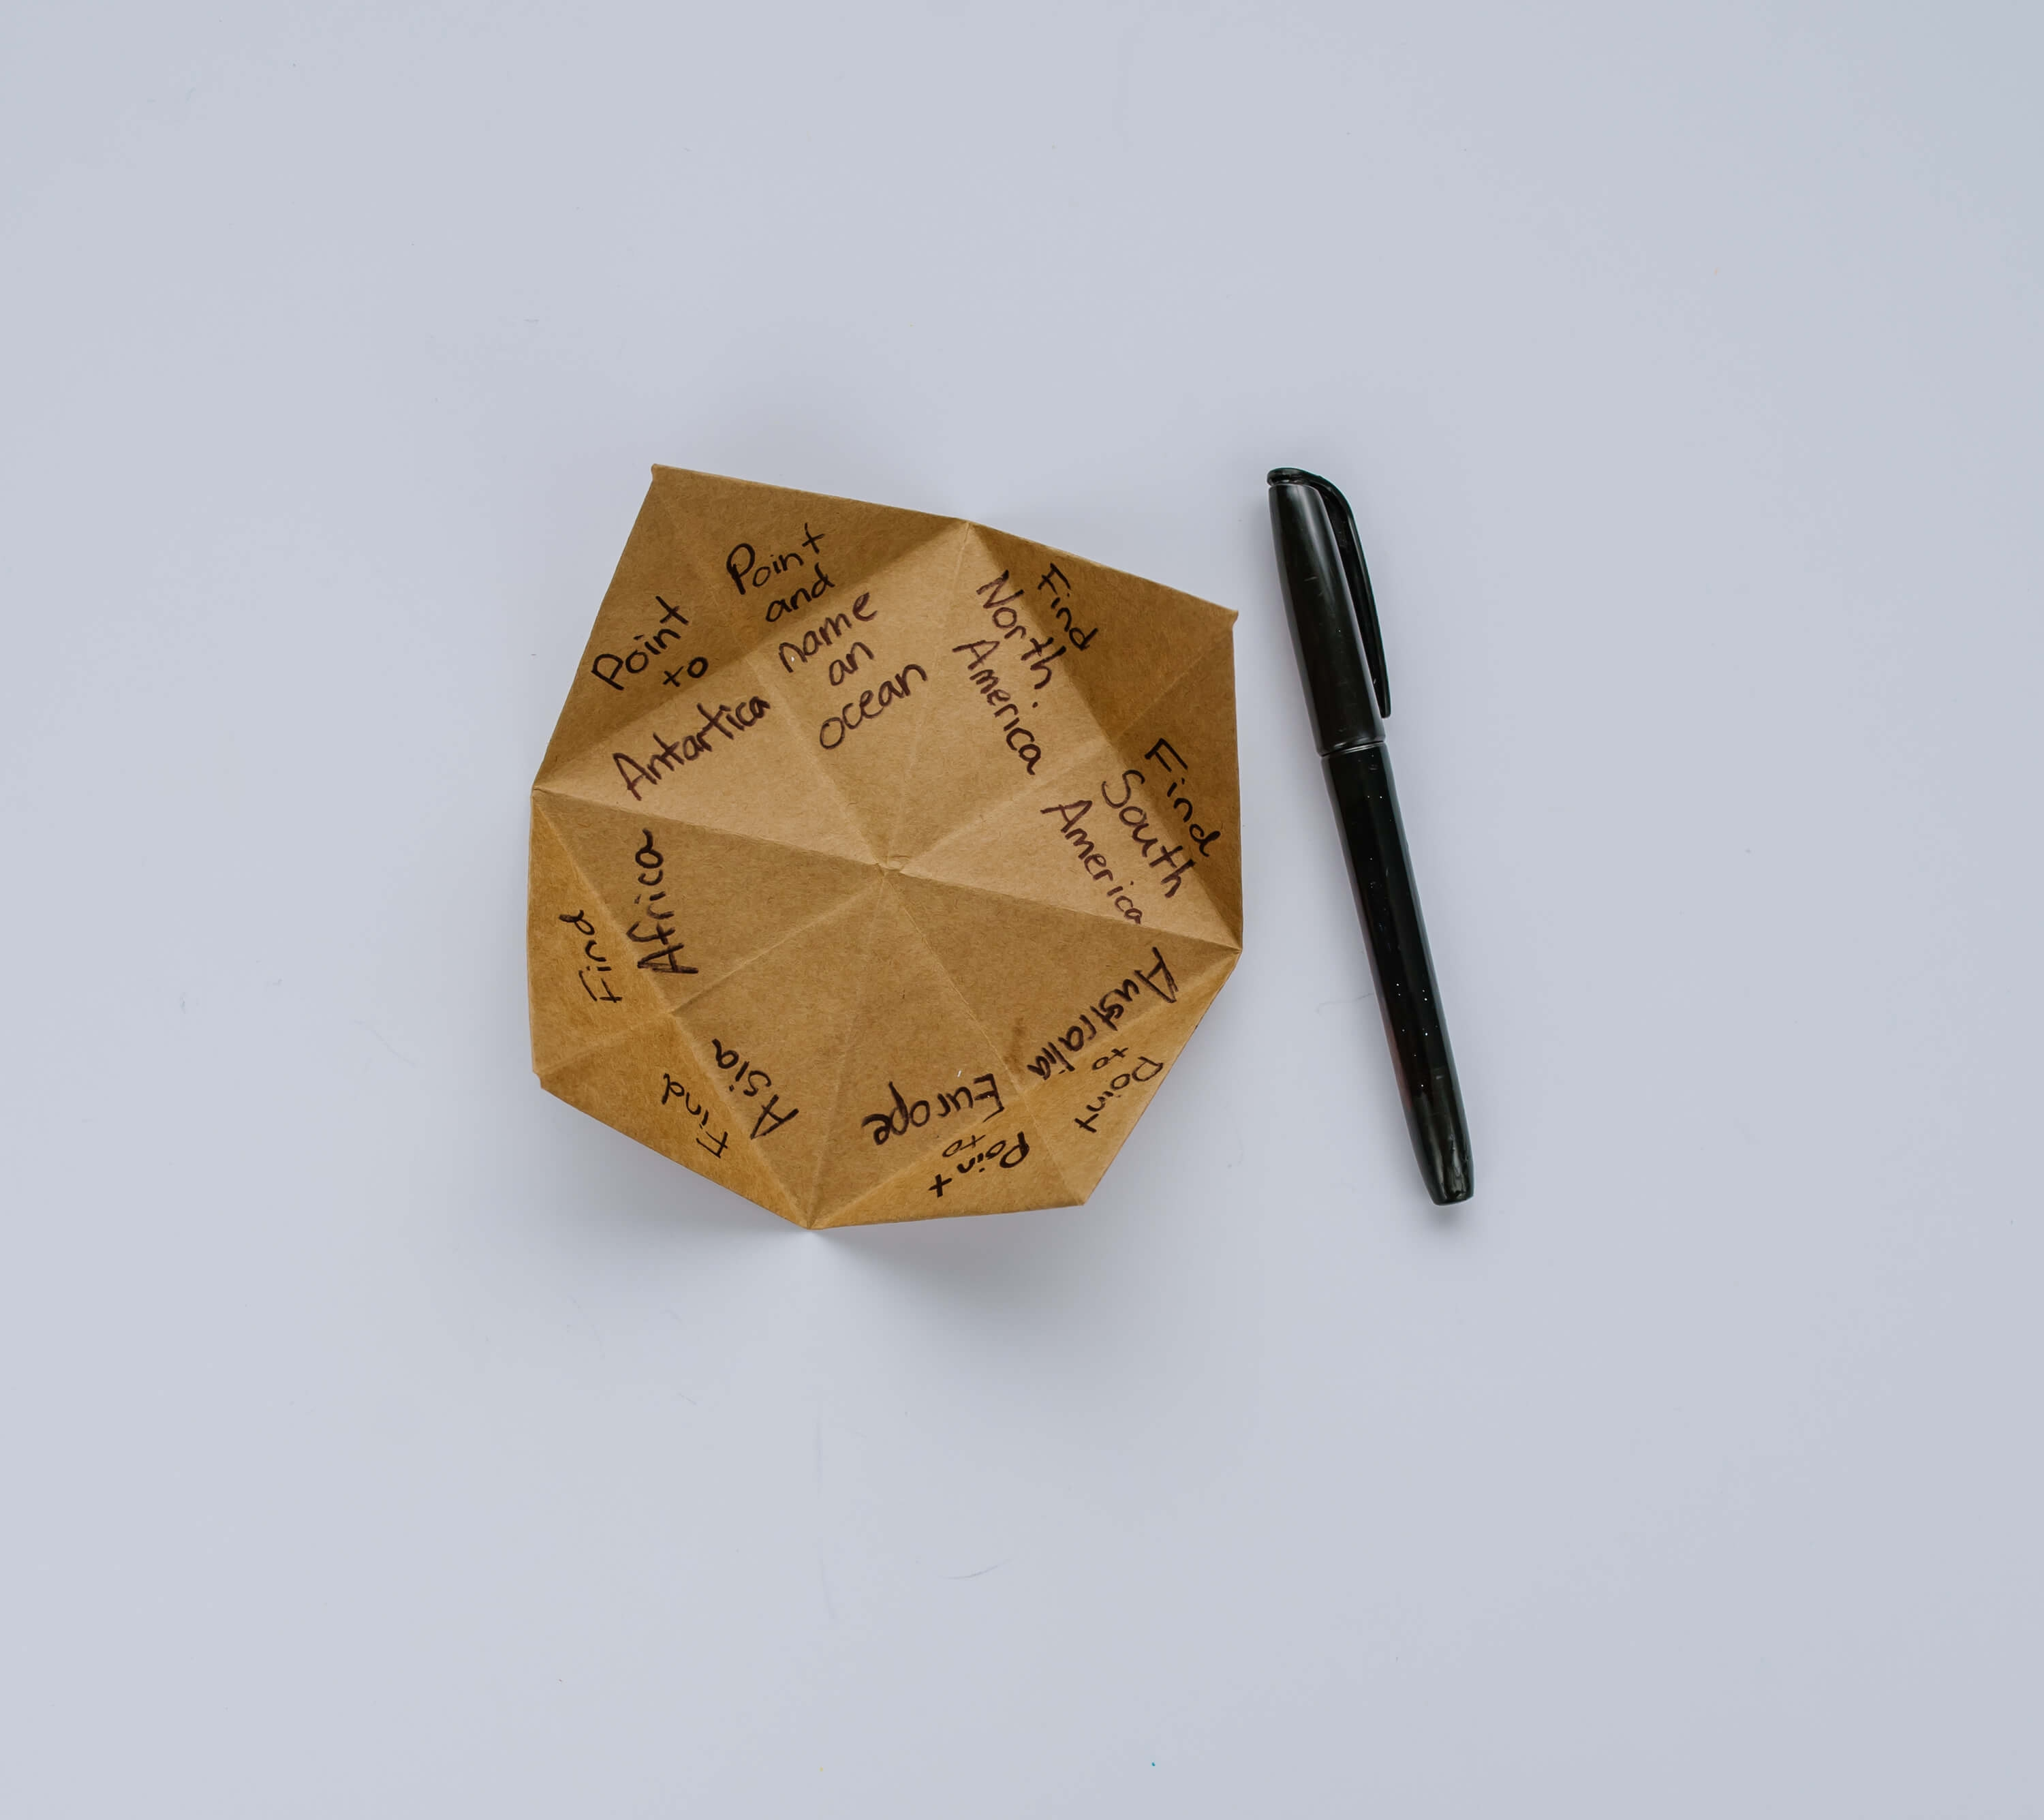 Lets play continent fortune teller mommymaleta do you remember playing with these origami fortune tellers as a kid well jeuxipadfo Gallery